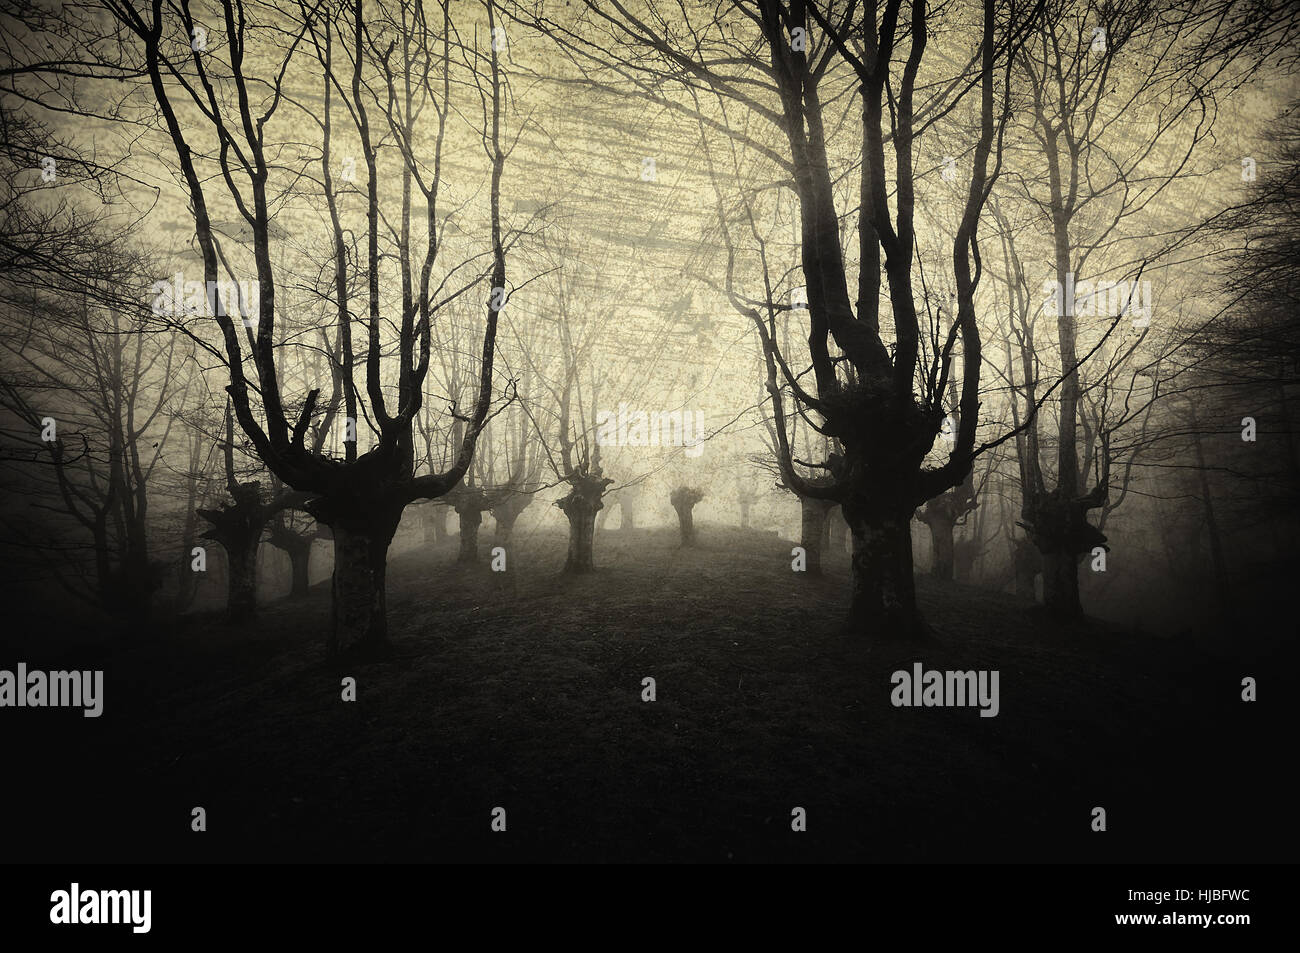 scary forest with creepy trees - Stock Image